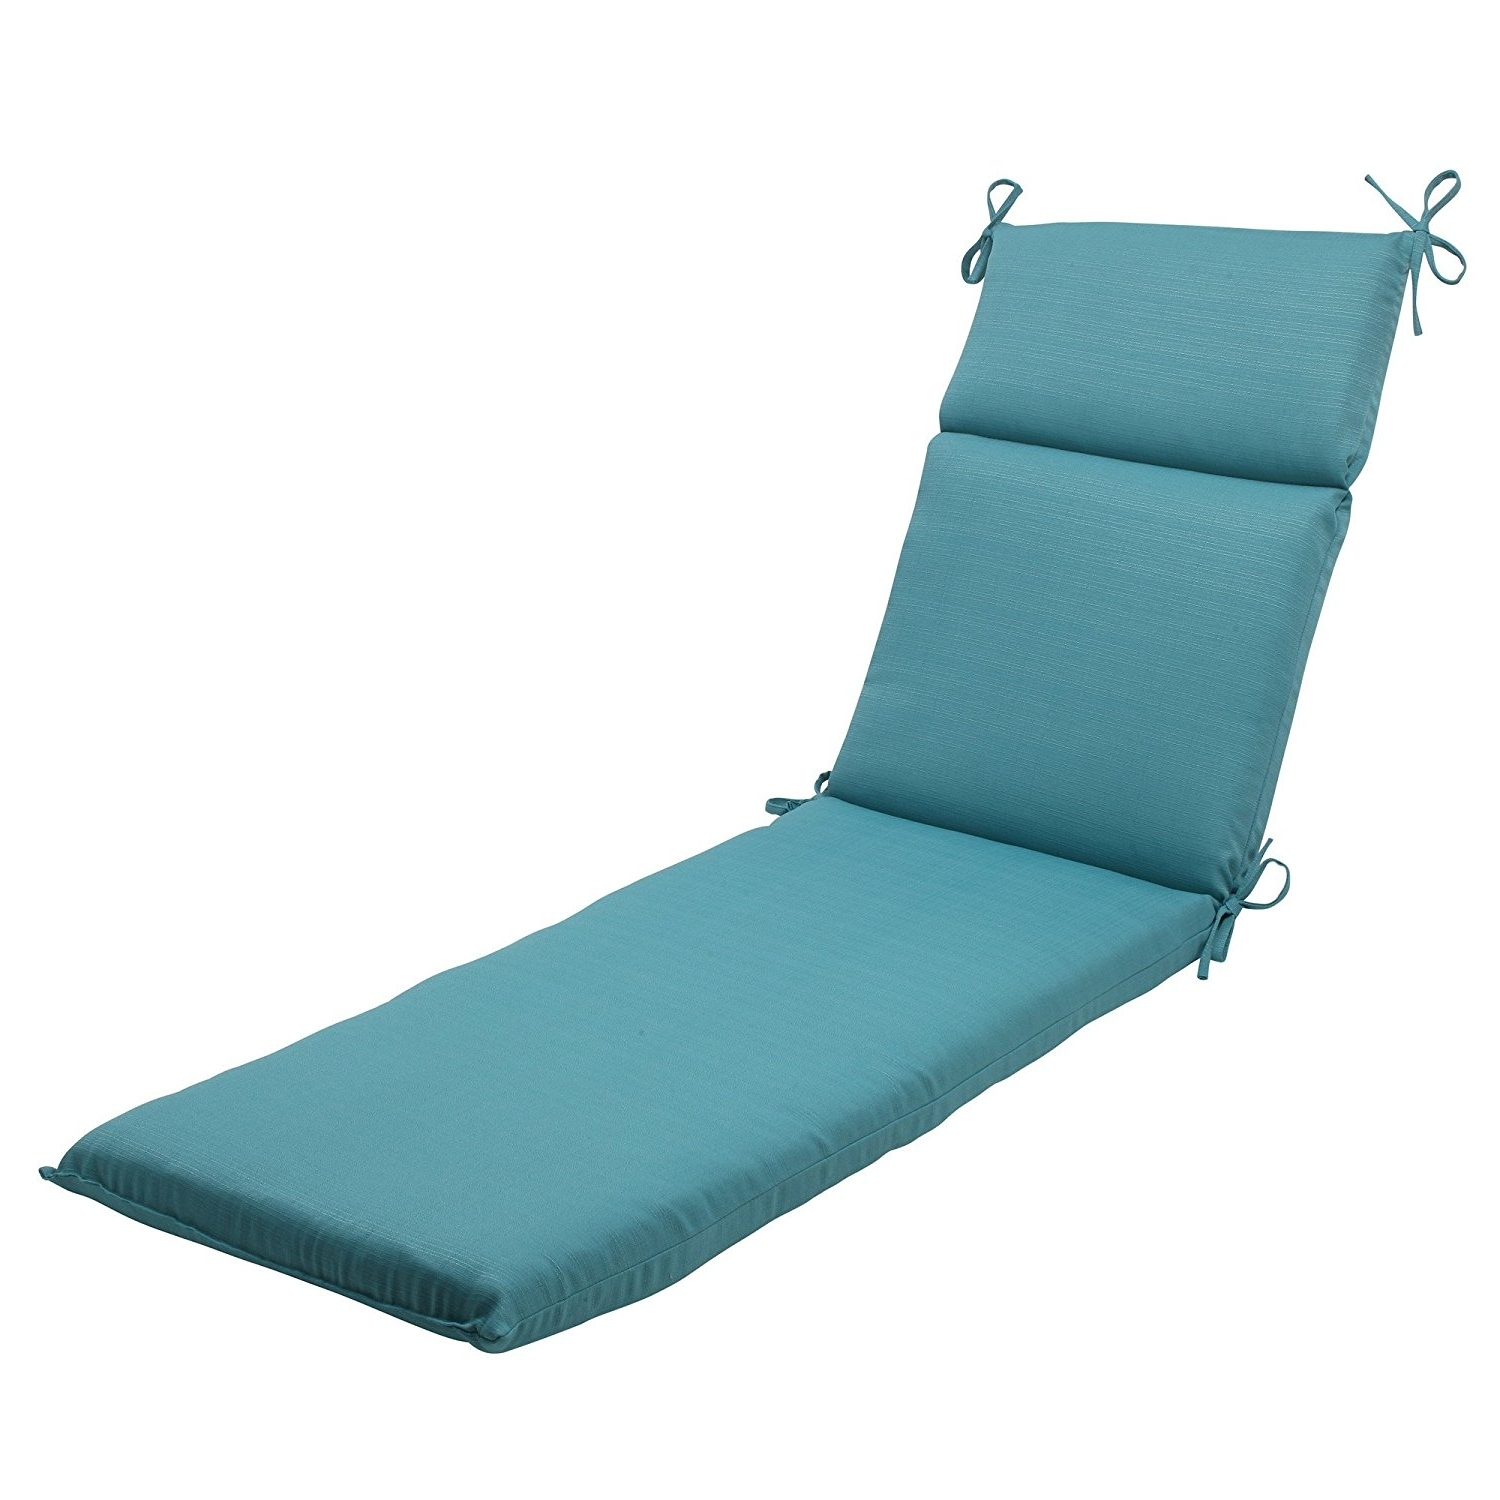 Amazon: Pillow Perfect Indoor/outdoor Forsyth Chaise Lounge Within Favorite Outdoor Chaise Lounge Cushions (View 2 of 15)